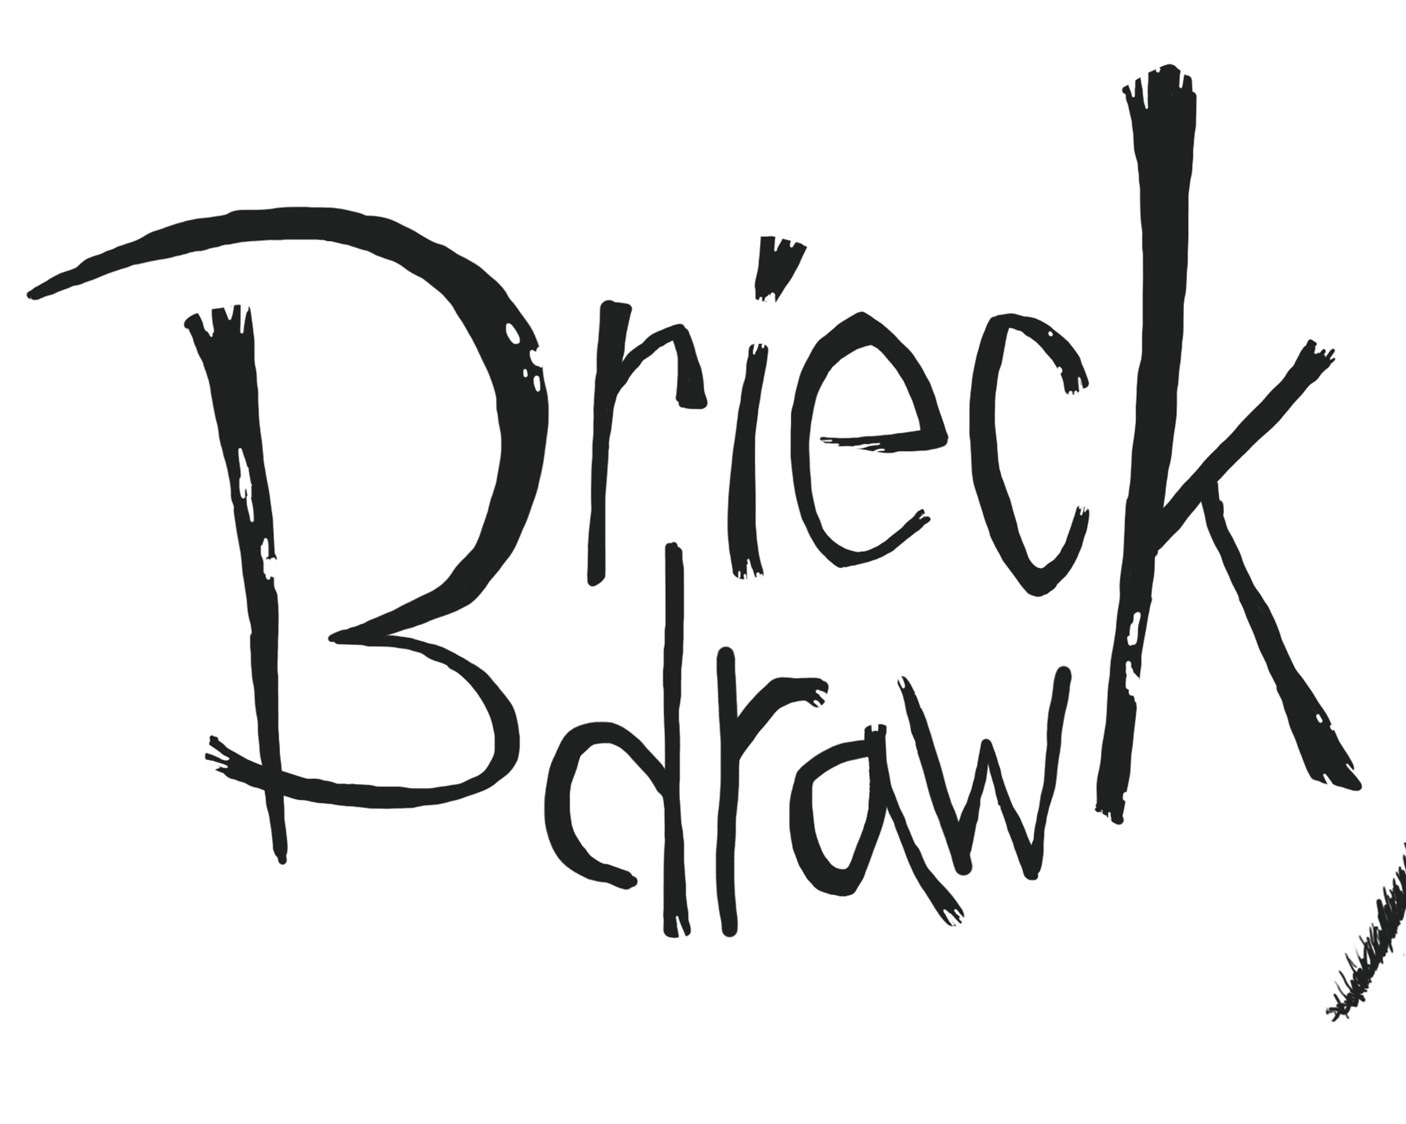 brieckdraw